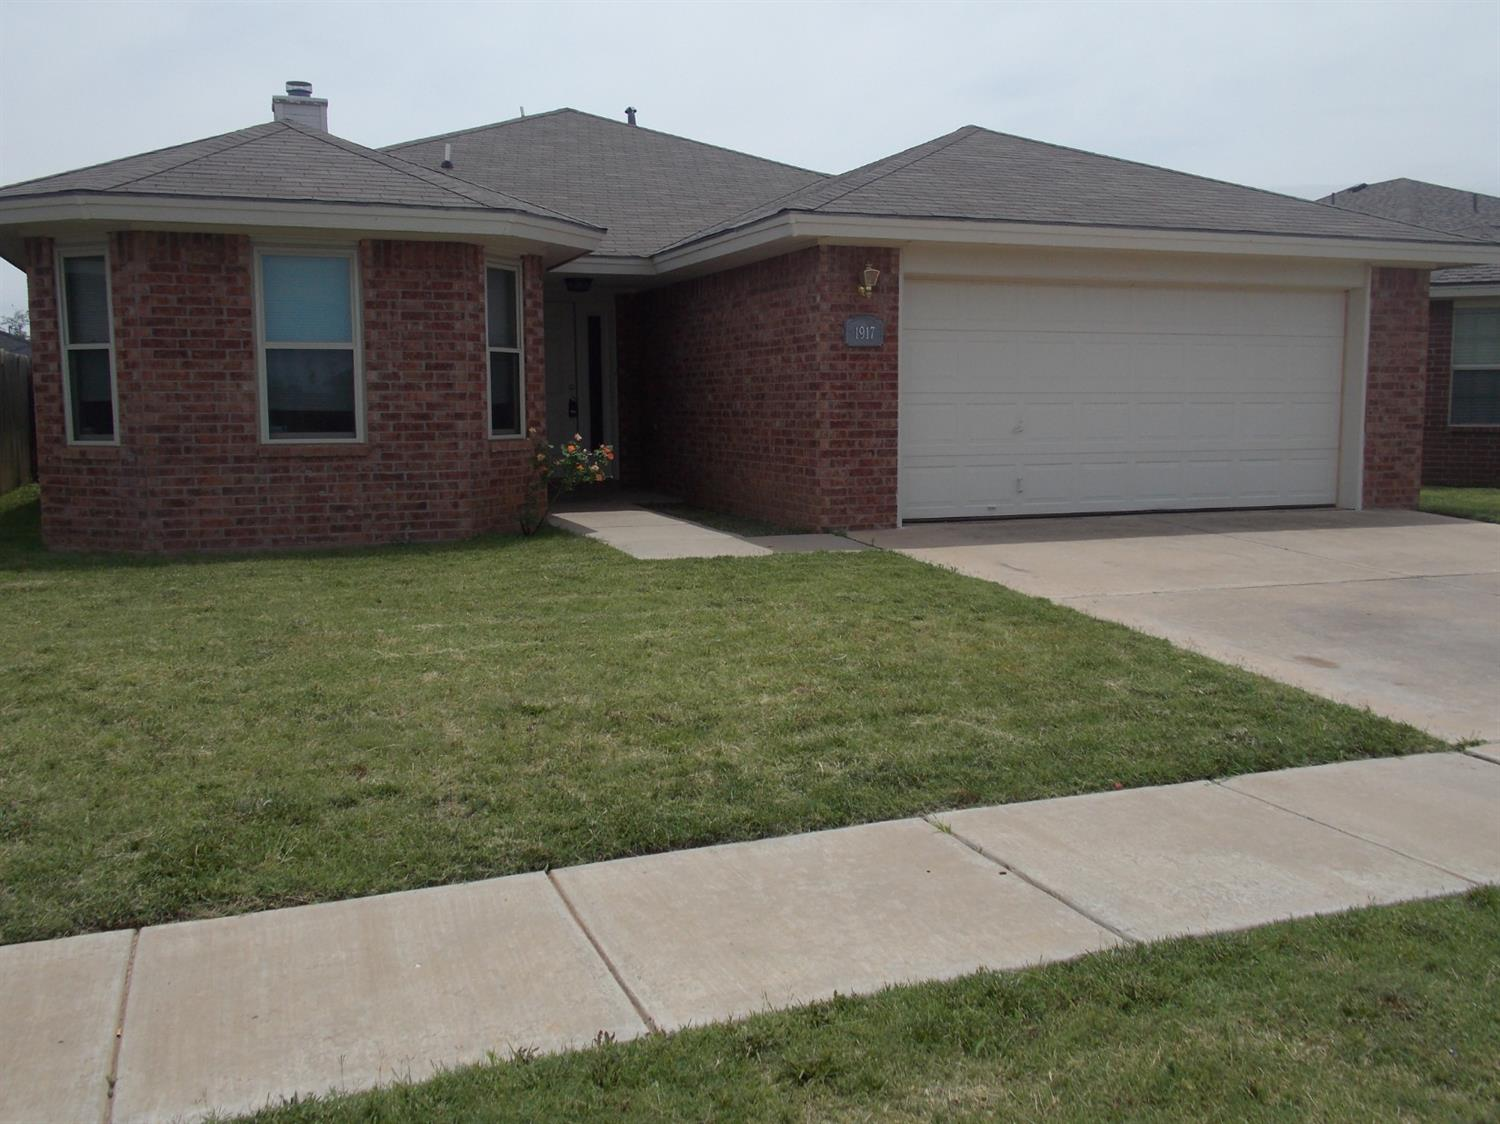 1917 78th Street, Lubbock in Lubbock County, TX 79423 Home for Sale